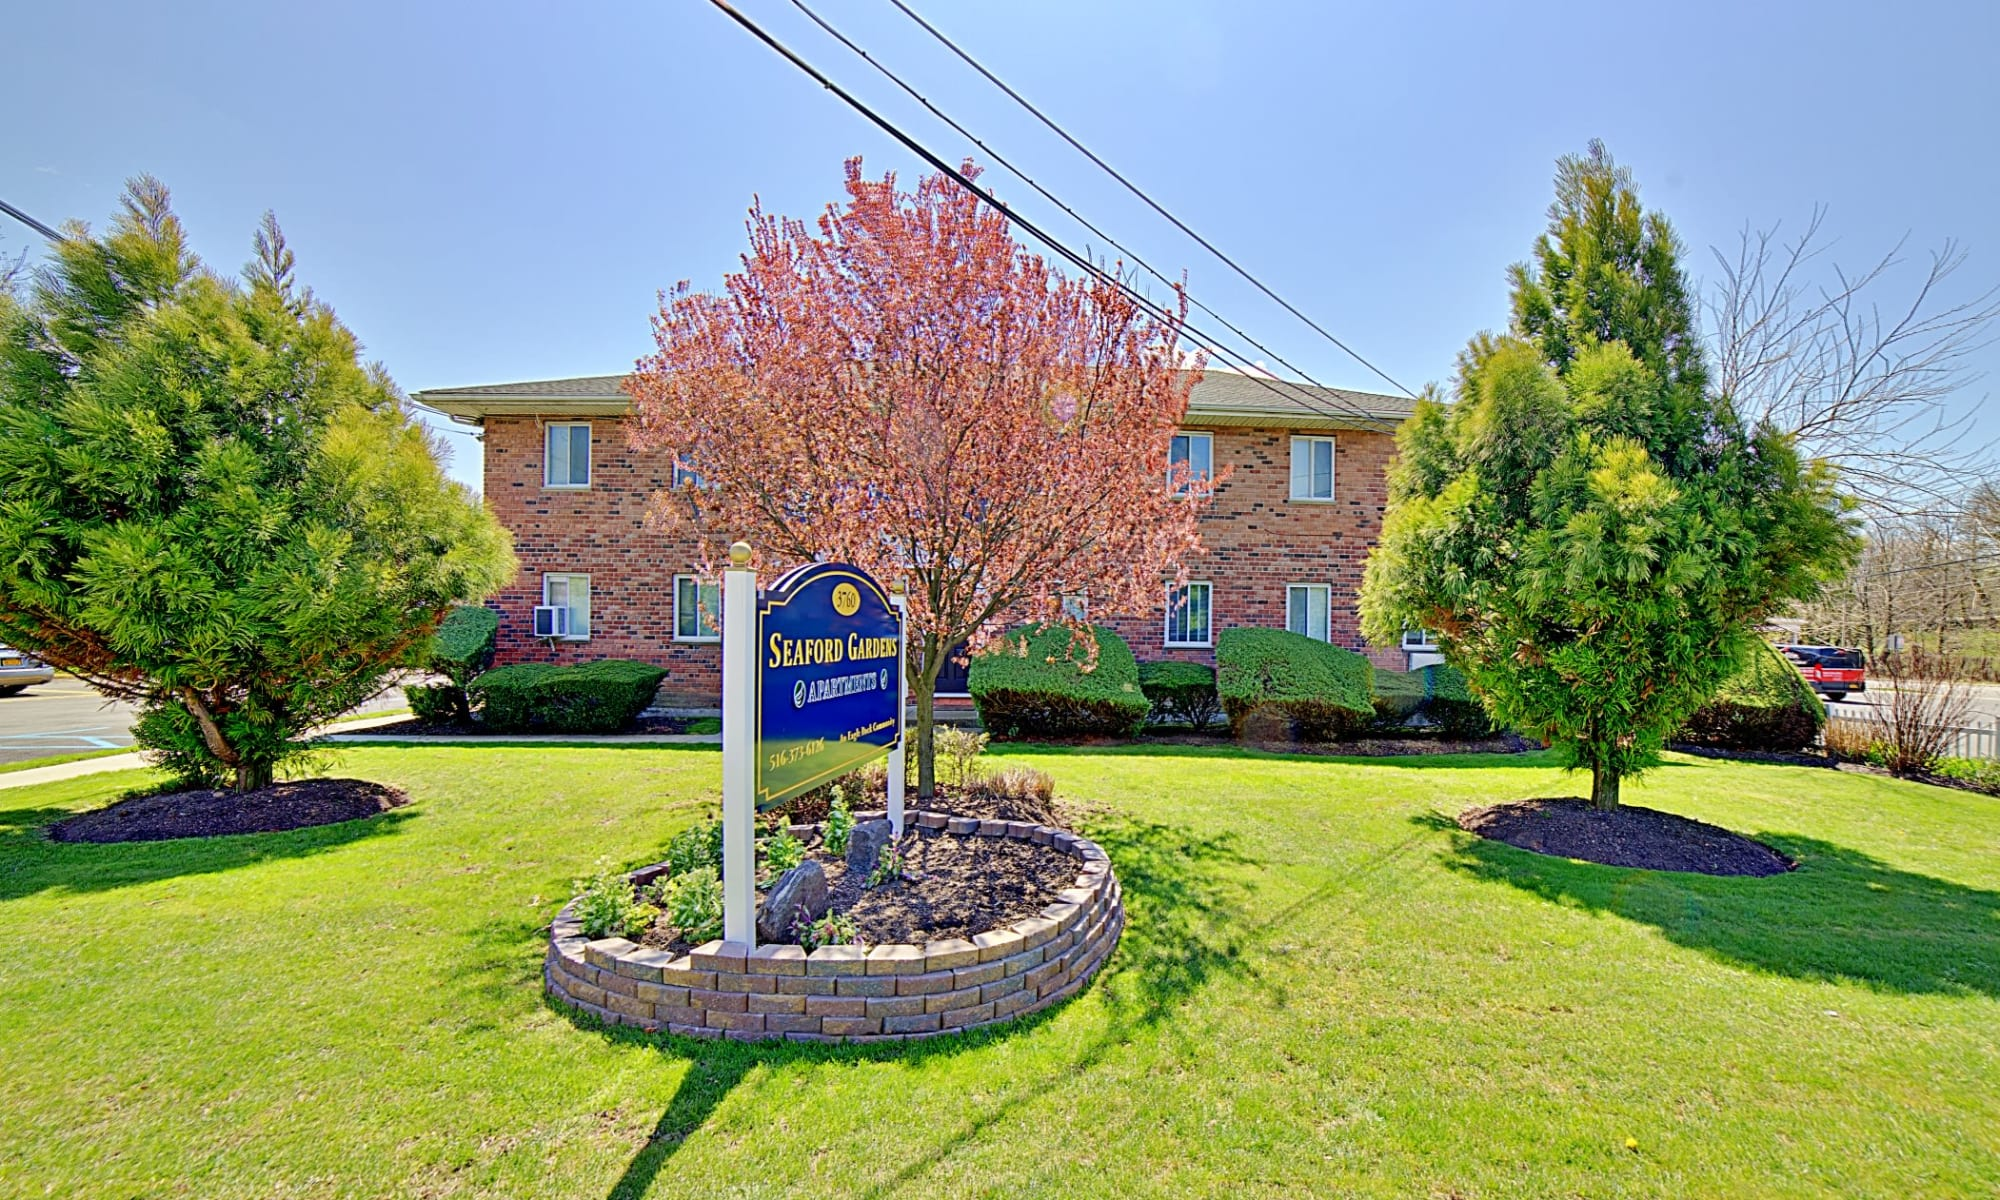 Apartments at Seaford Gardens in Seaford, New York